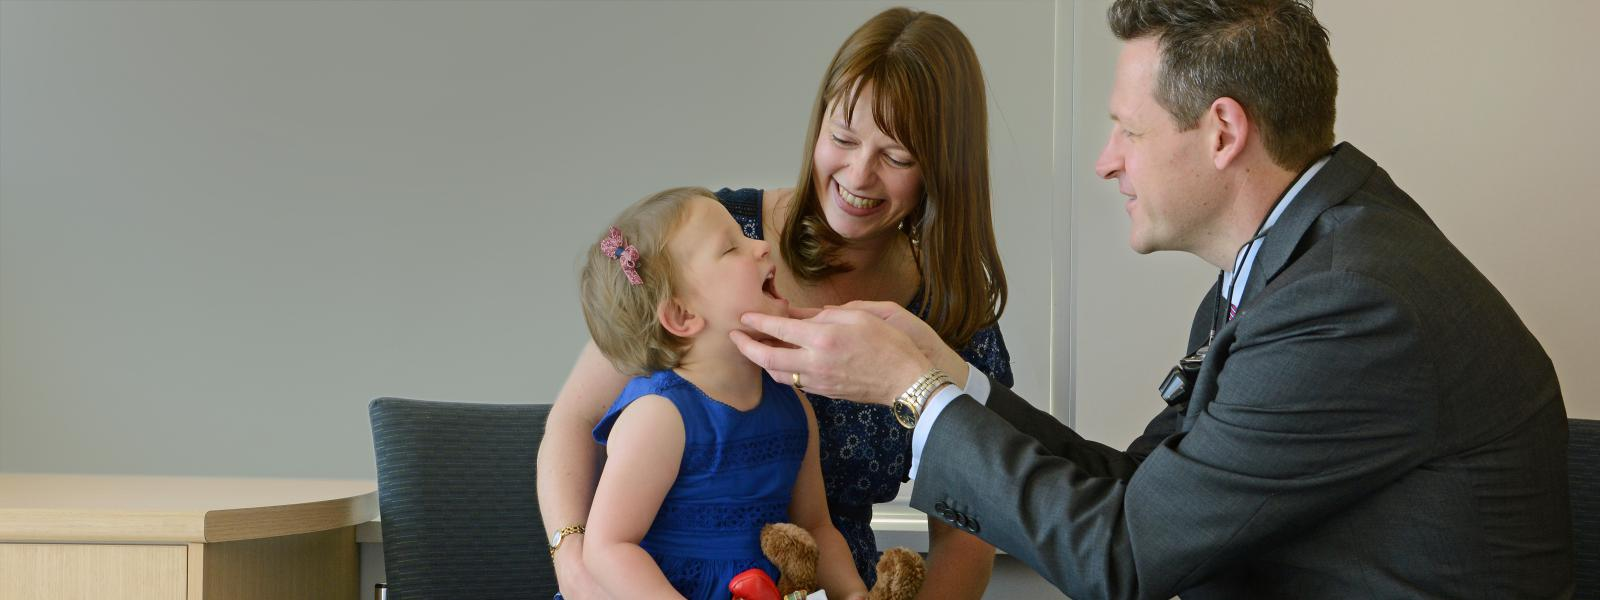 Dr with Parent and Child Patient examining throat